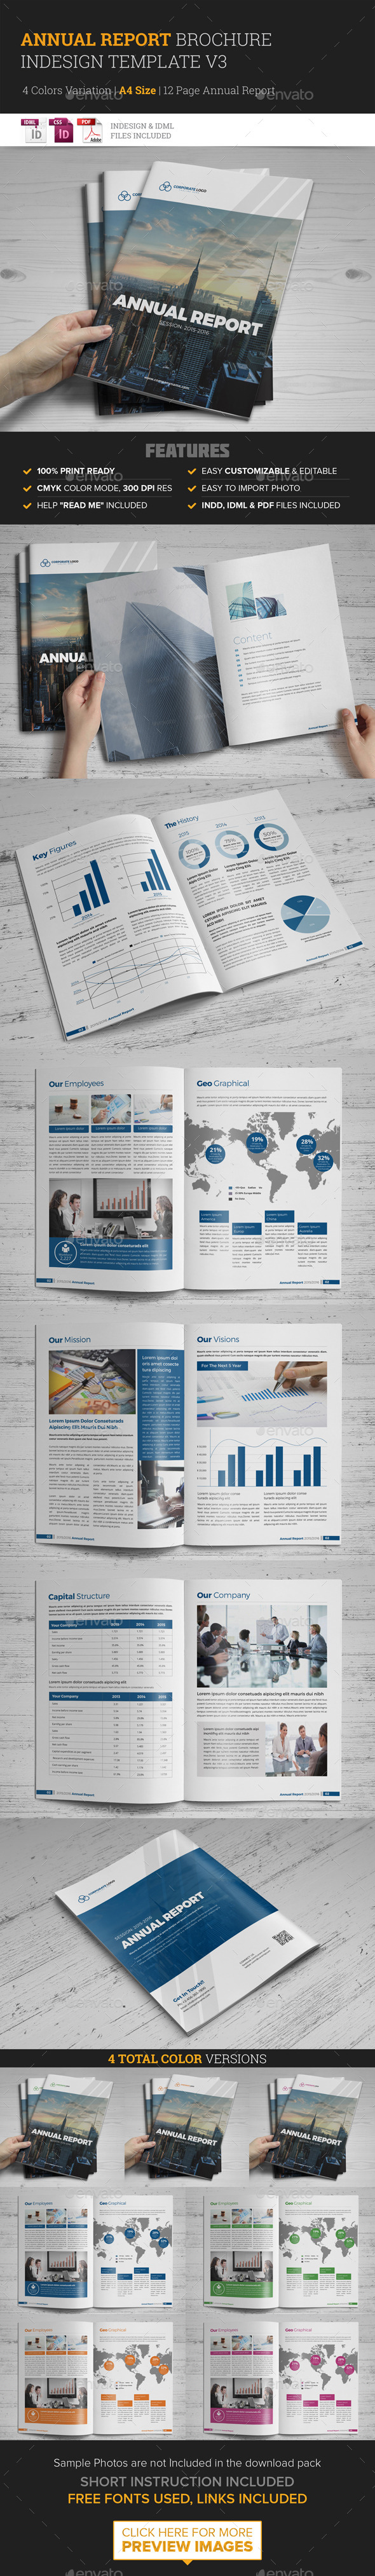 Annual Report Brochure Indesign Template 3 - Corporate Brochures